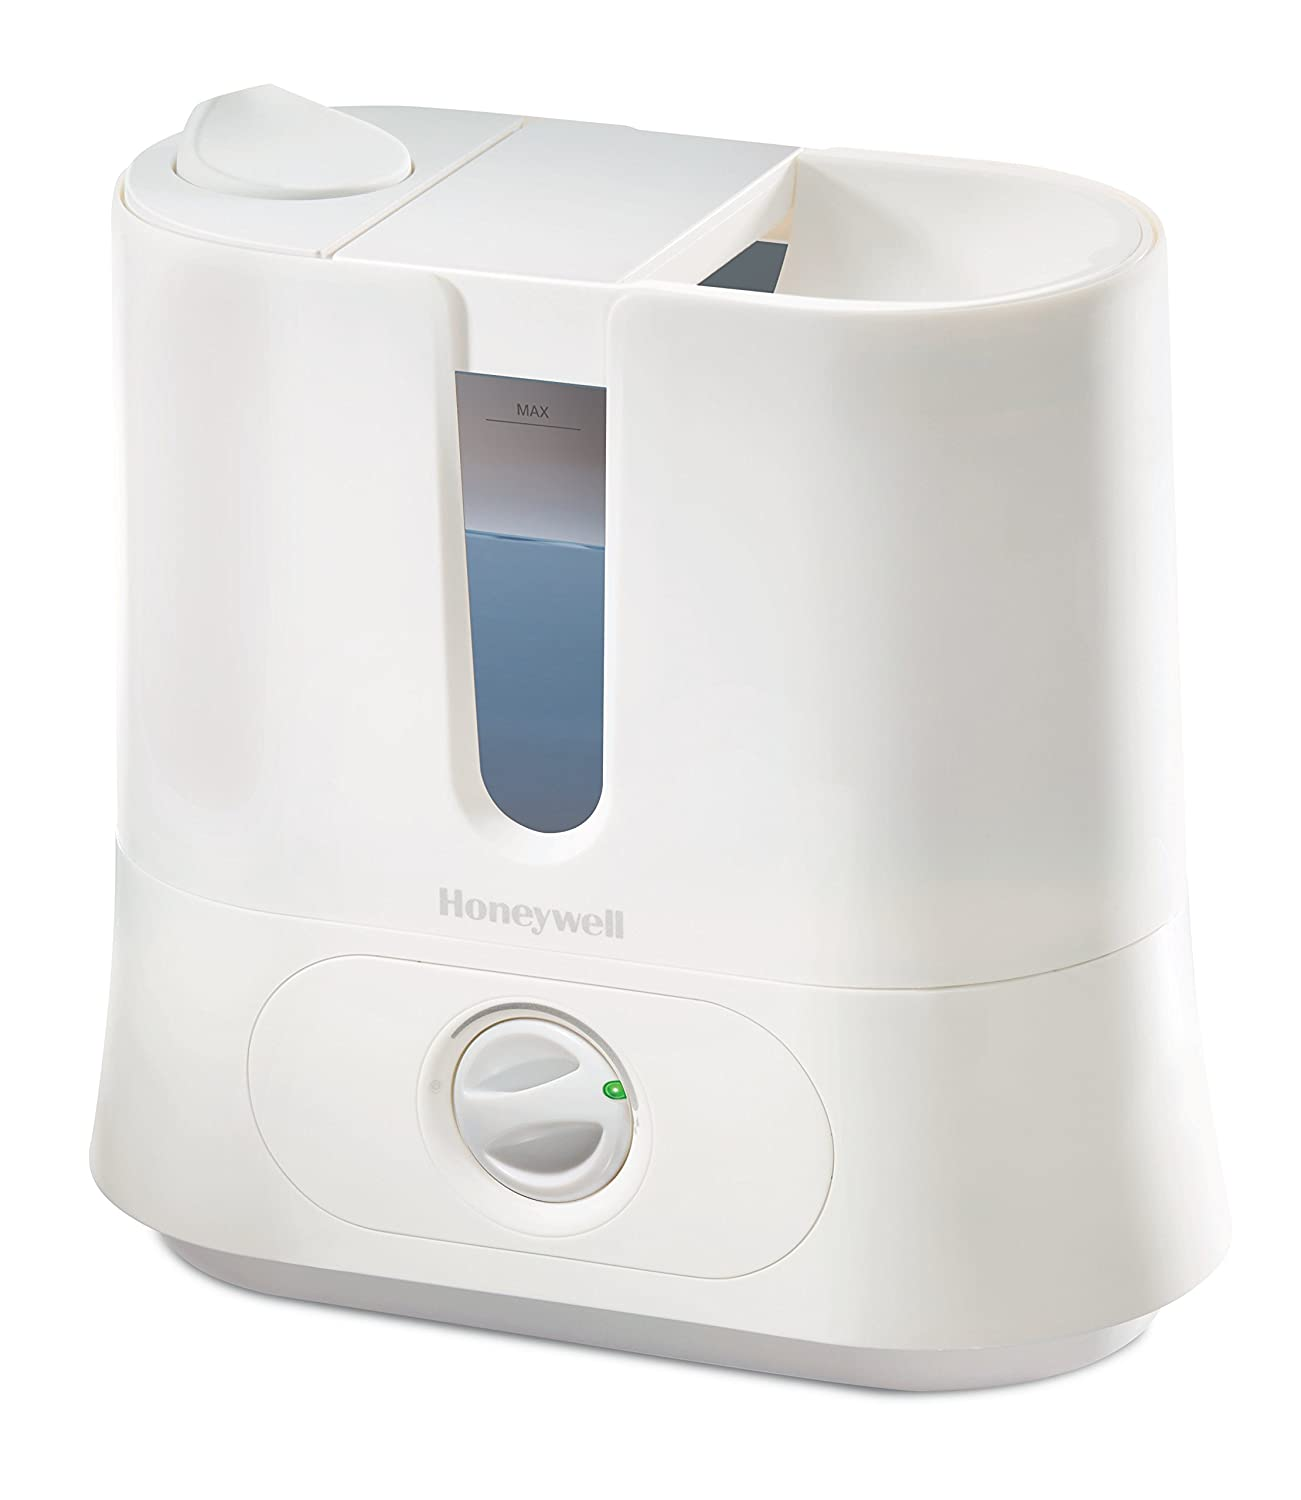 Honeywell Top Fill Cool Mist Humidifier, Black Helen of Troy Health and Home HUL570B